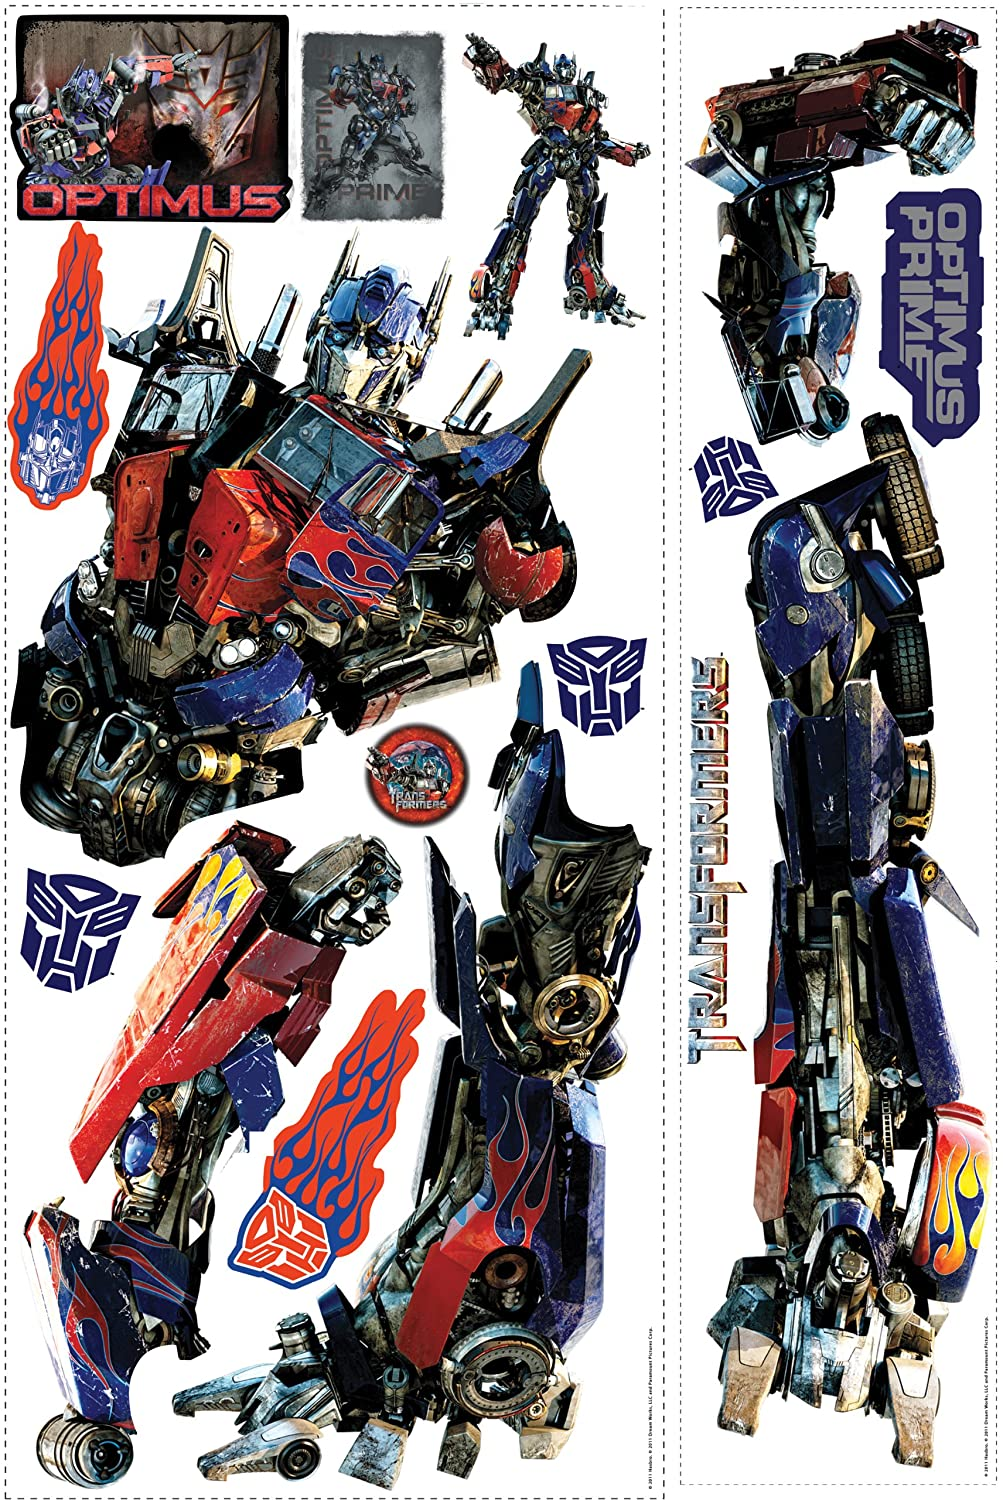 RoomMates RMK1089GB Transformers 3 Optimus Prime Peel and Stick Giant Wall Decal Wall Stickers u0026 Murals - Amazon Canada & RoomMates RMK1089GB Transformers 3 Optimus Prime Peel and Stick ...